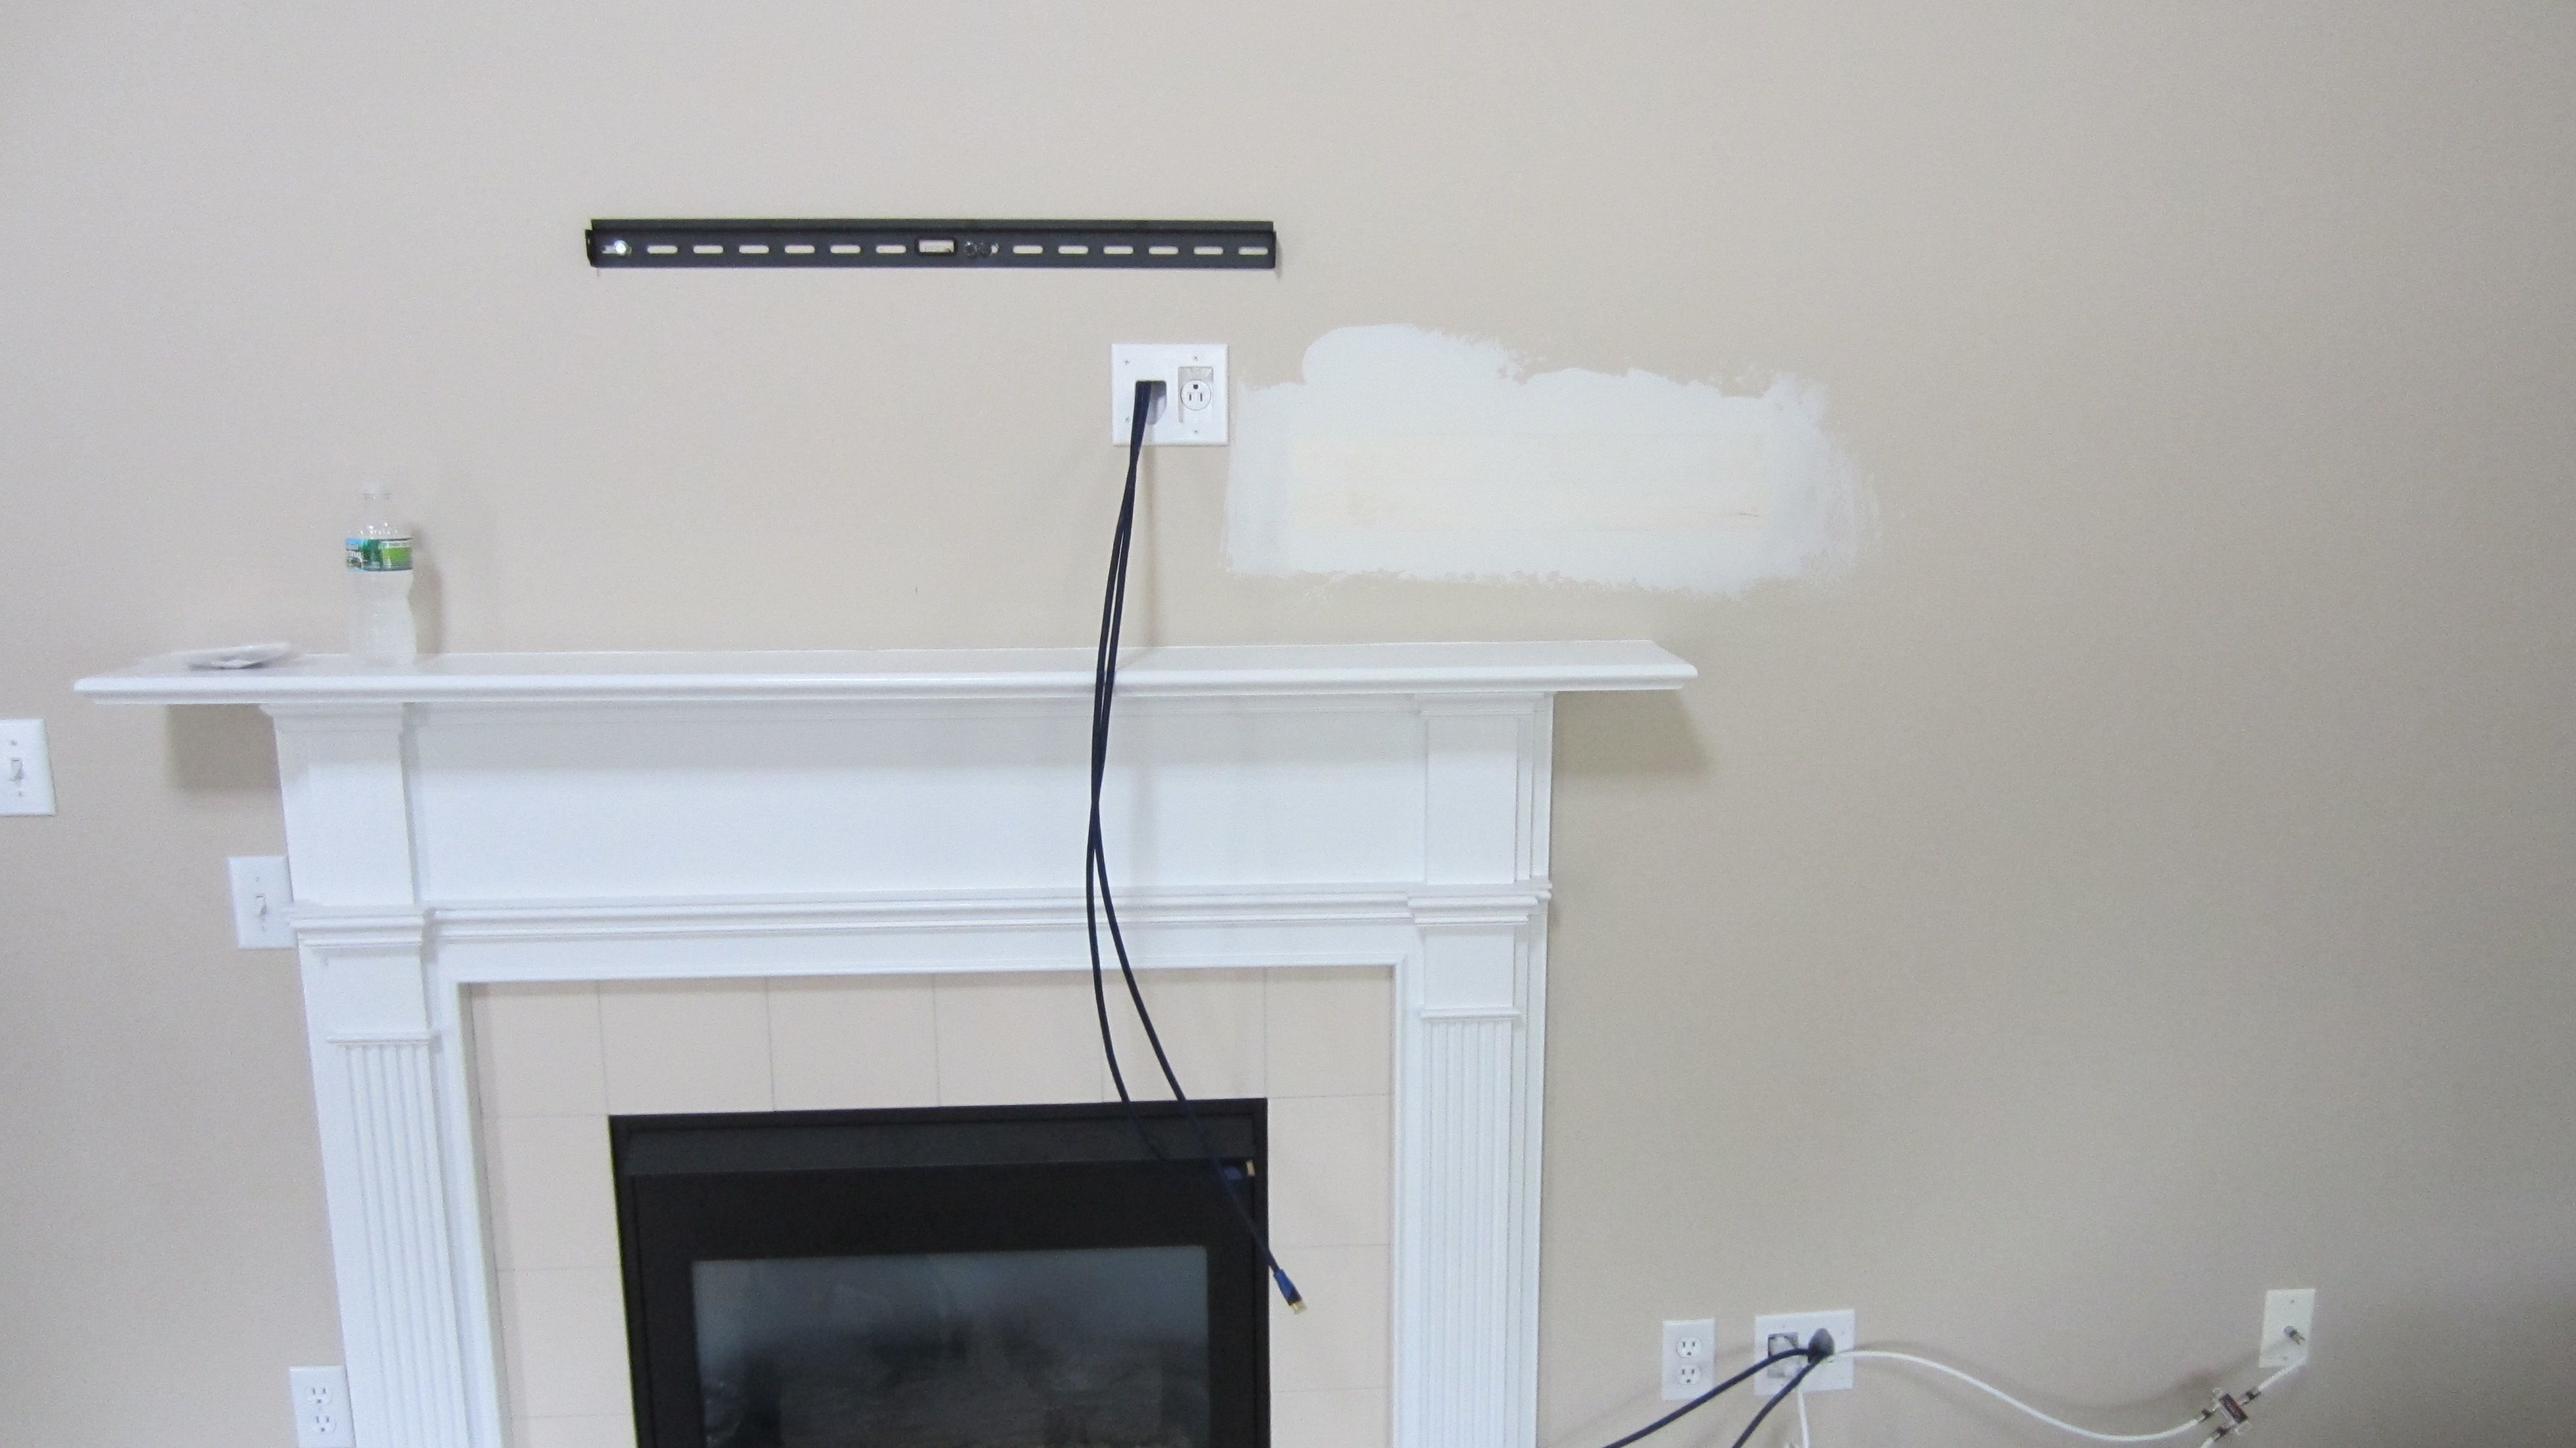 Pin On Tv Above Fireplace